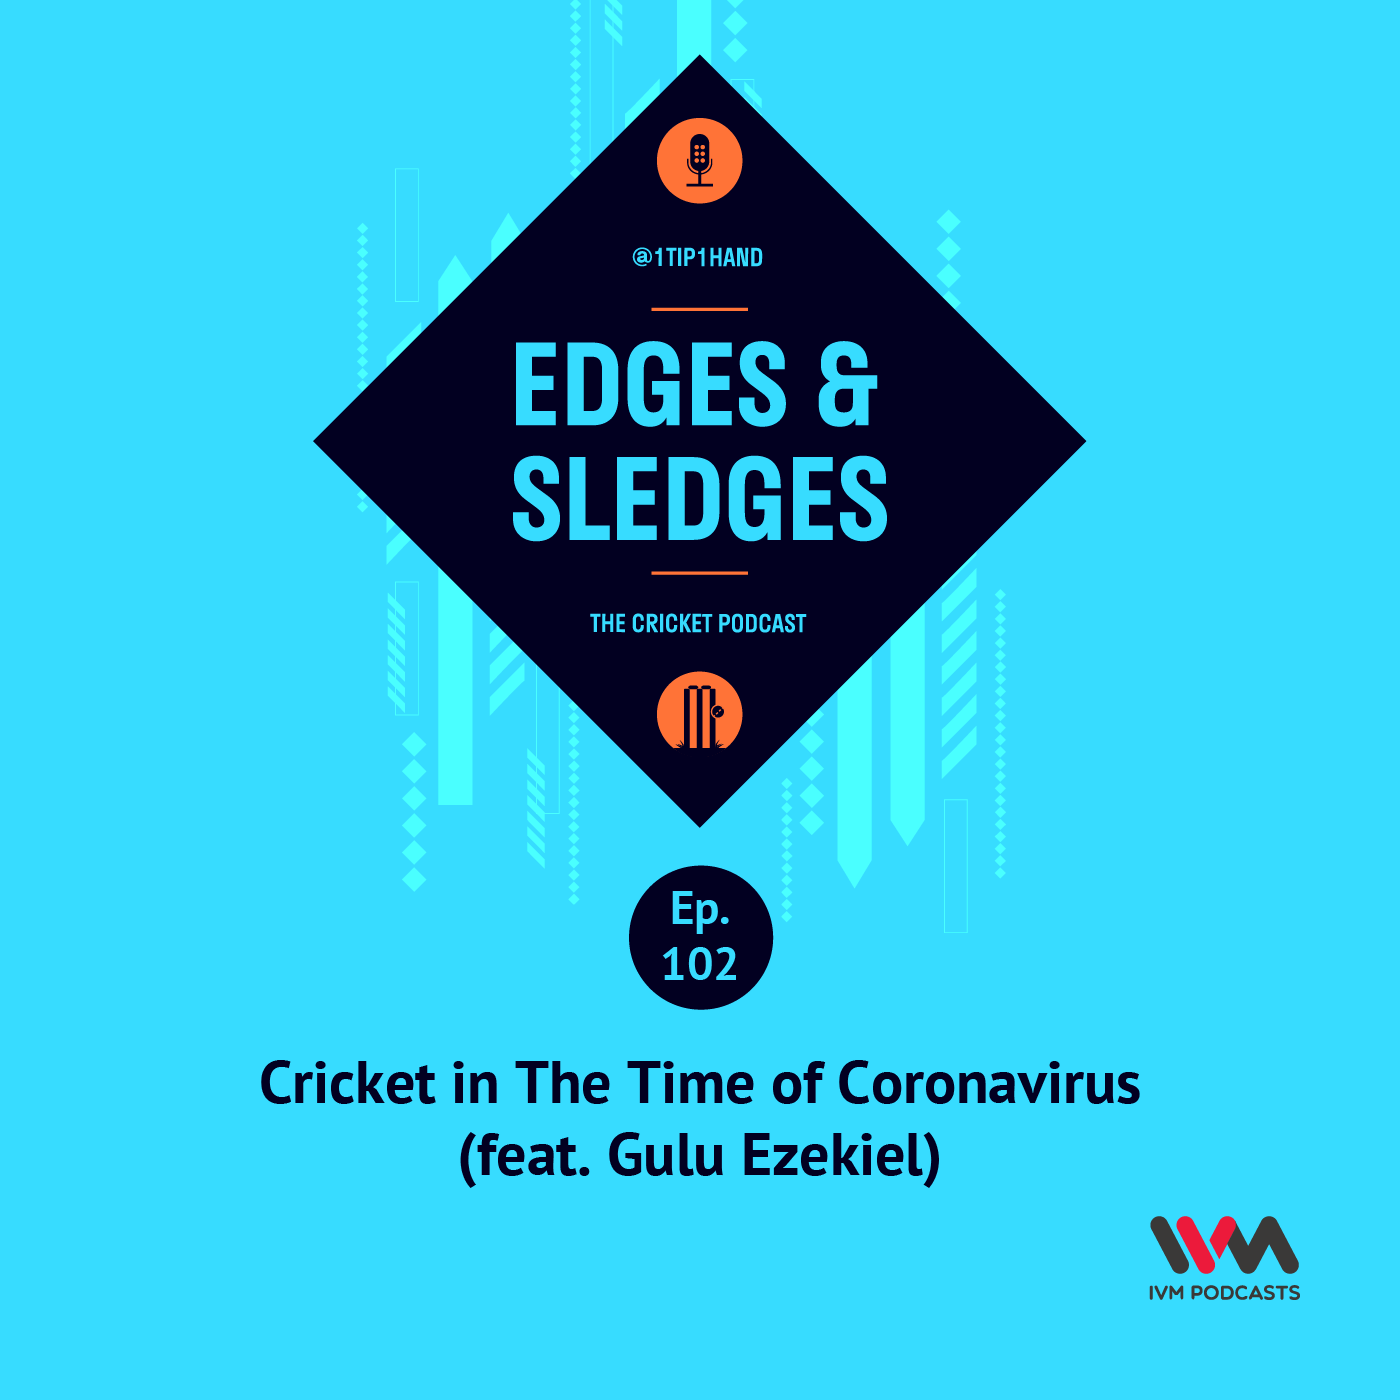 Ep. 102: Cricket in The Time of Coronavirus (feat. Gulu Ezekiel)